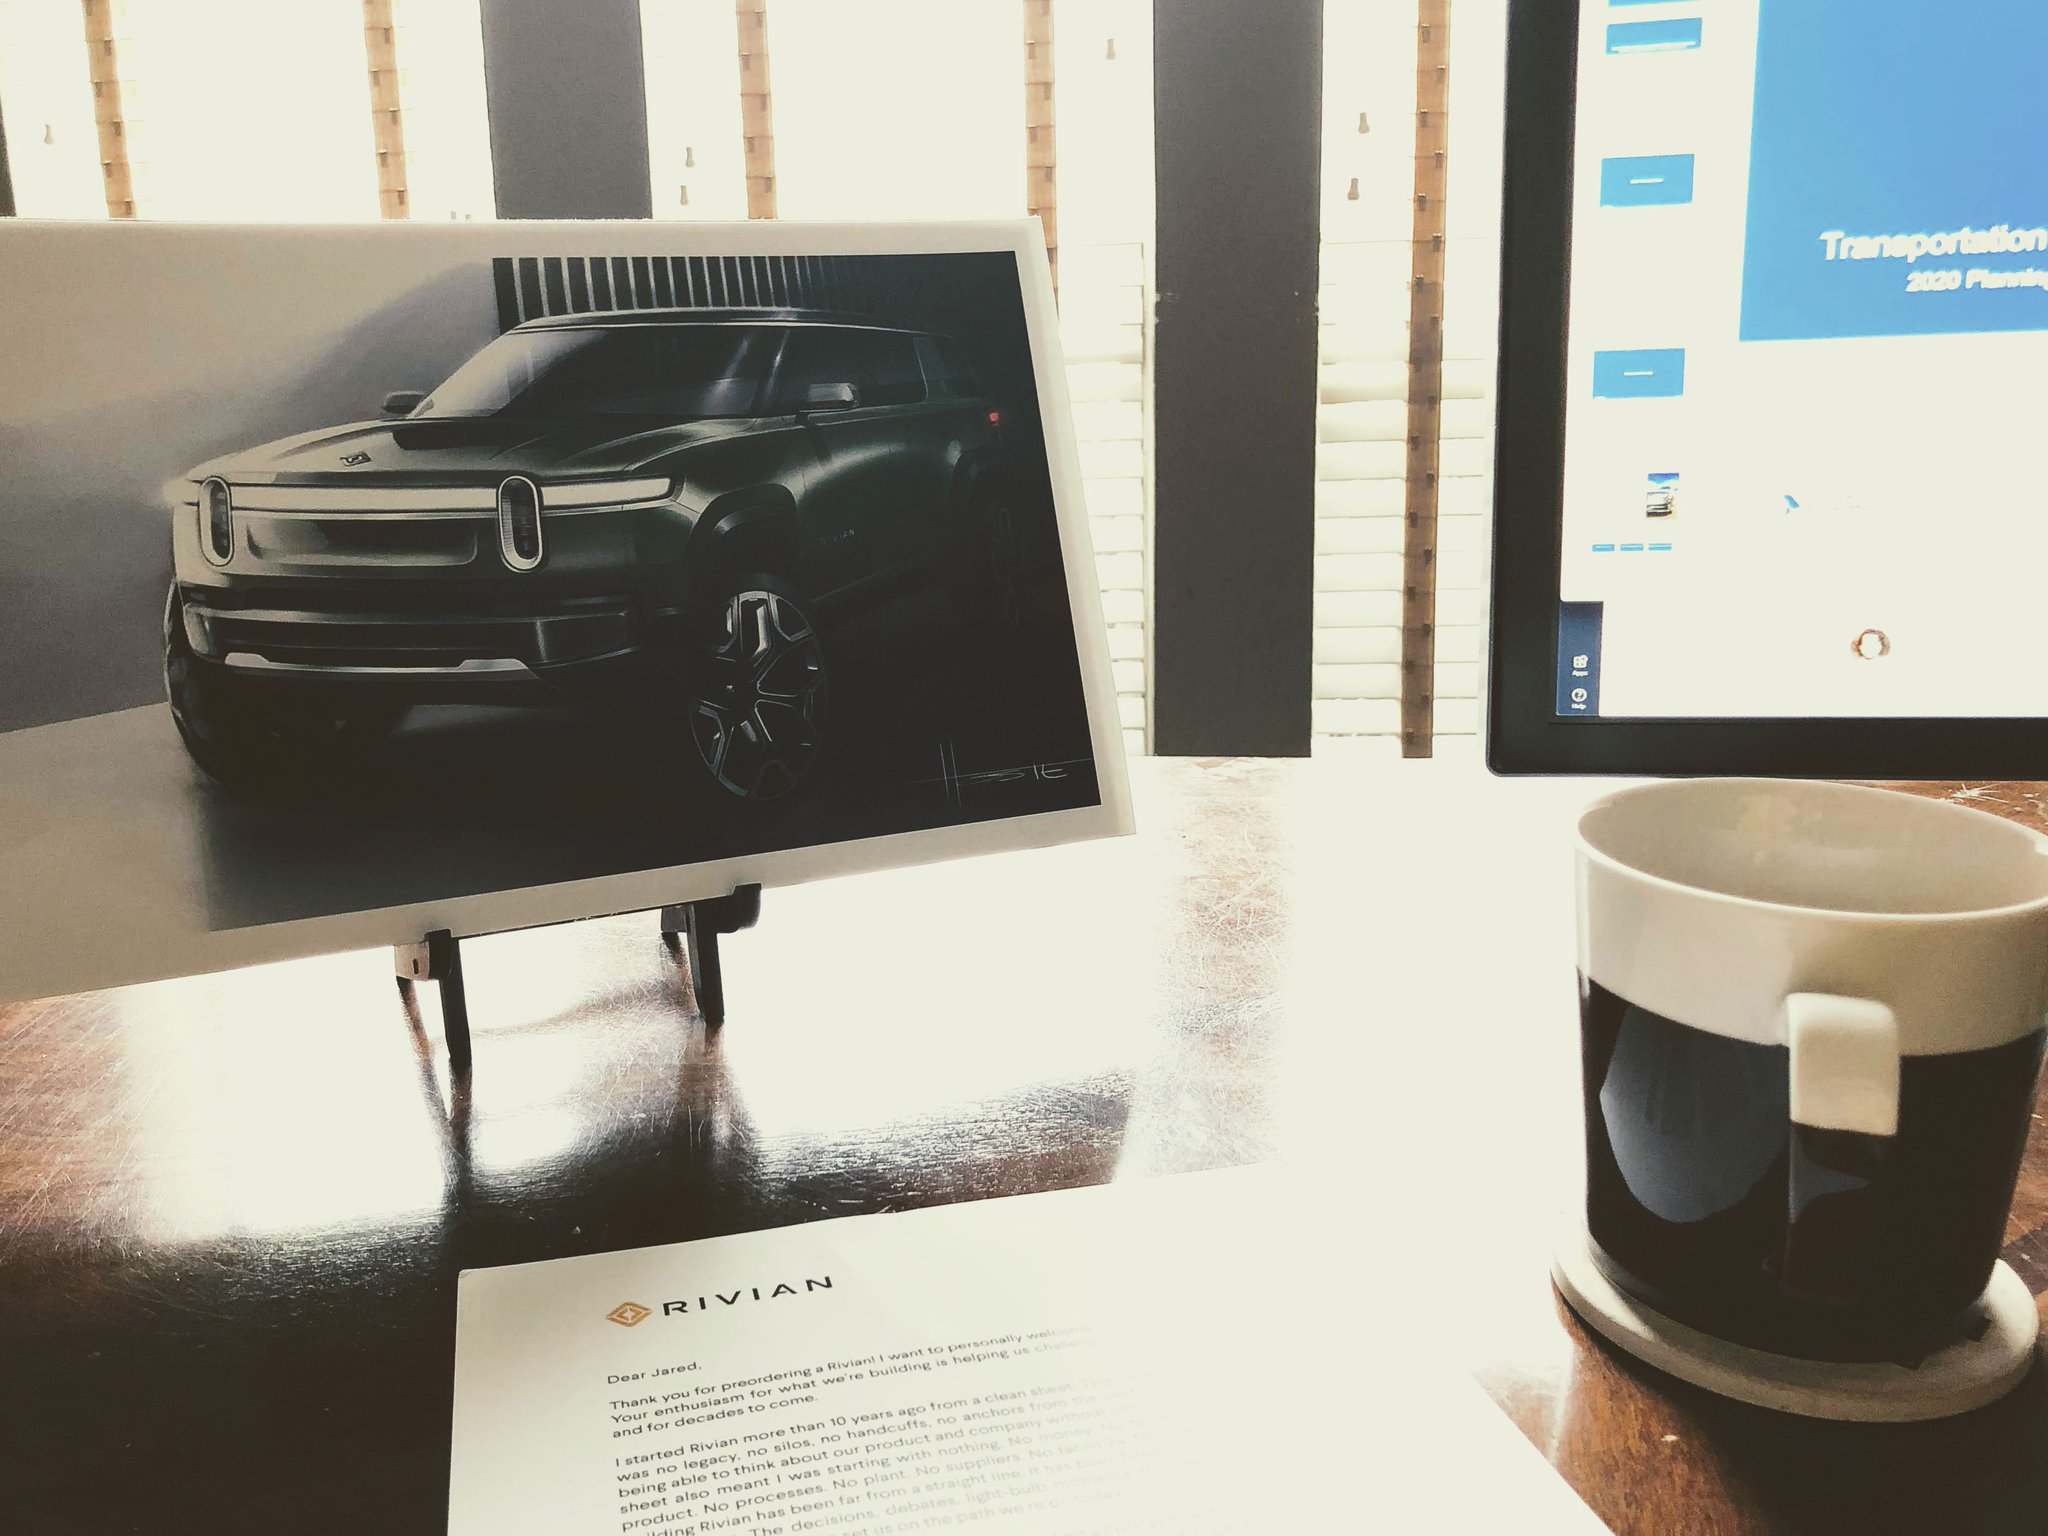 Some sweet new art and #motivation from @Rivian as I settle into day 1 of my new #WorkFromHome setup. Let's #FlattenTheCurve and make this gorgeous #R1S ride a reality - an adventure awaits! Appreciate the letter @RJScaringe https://t.co/BWGChlC4IC